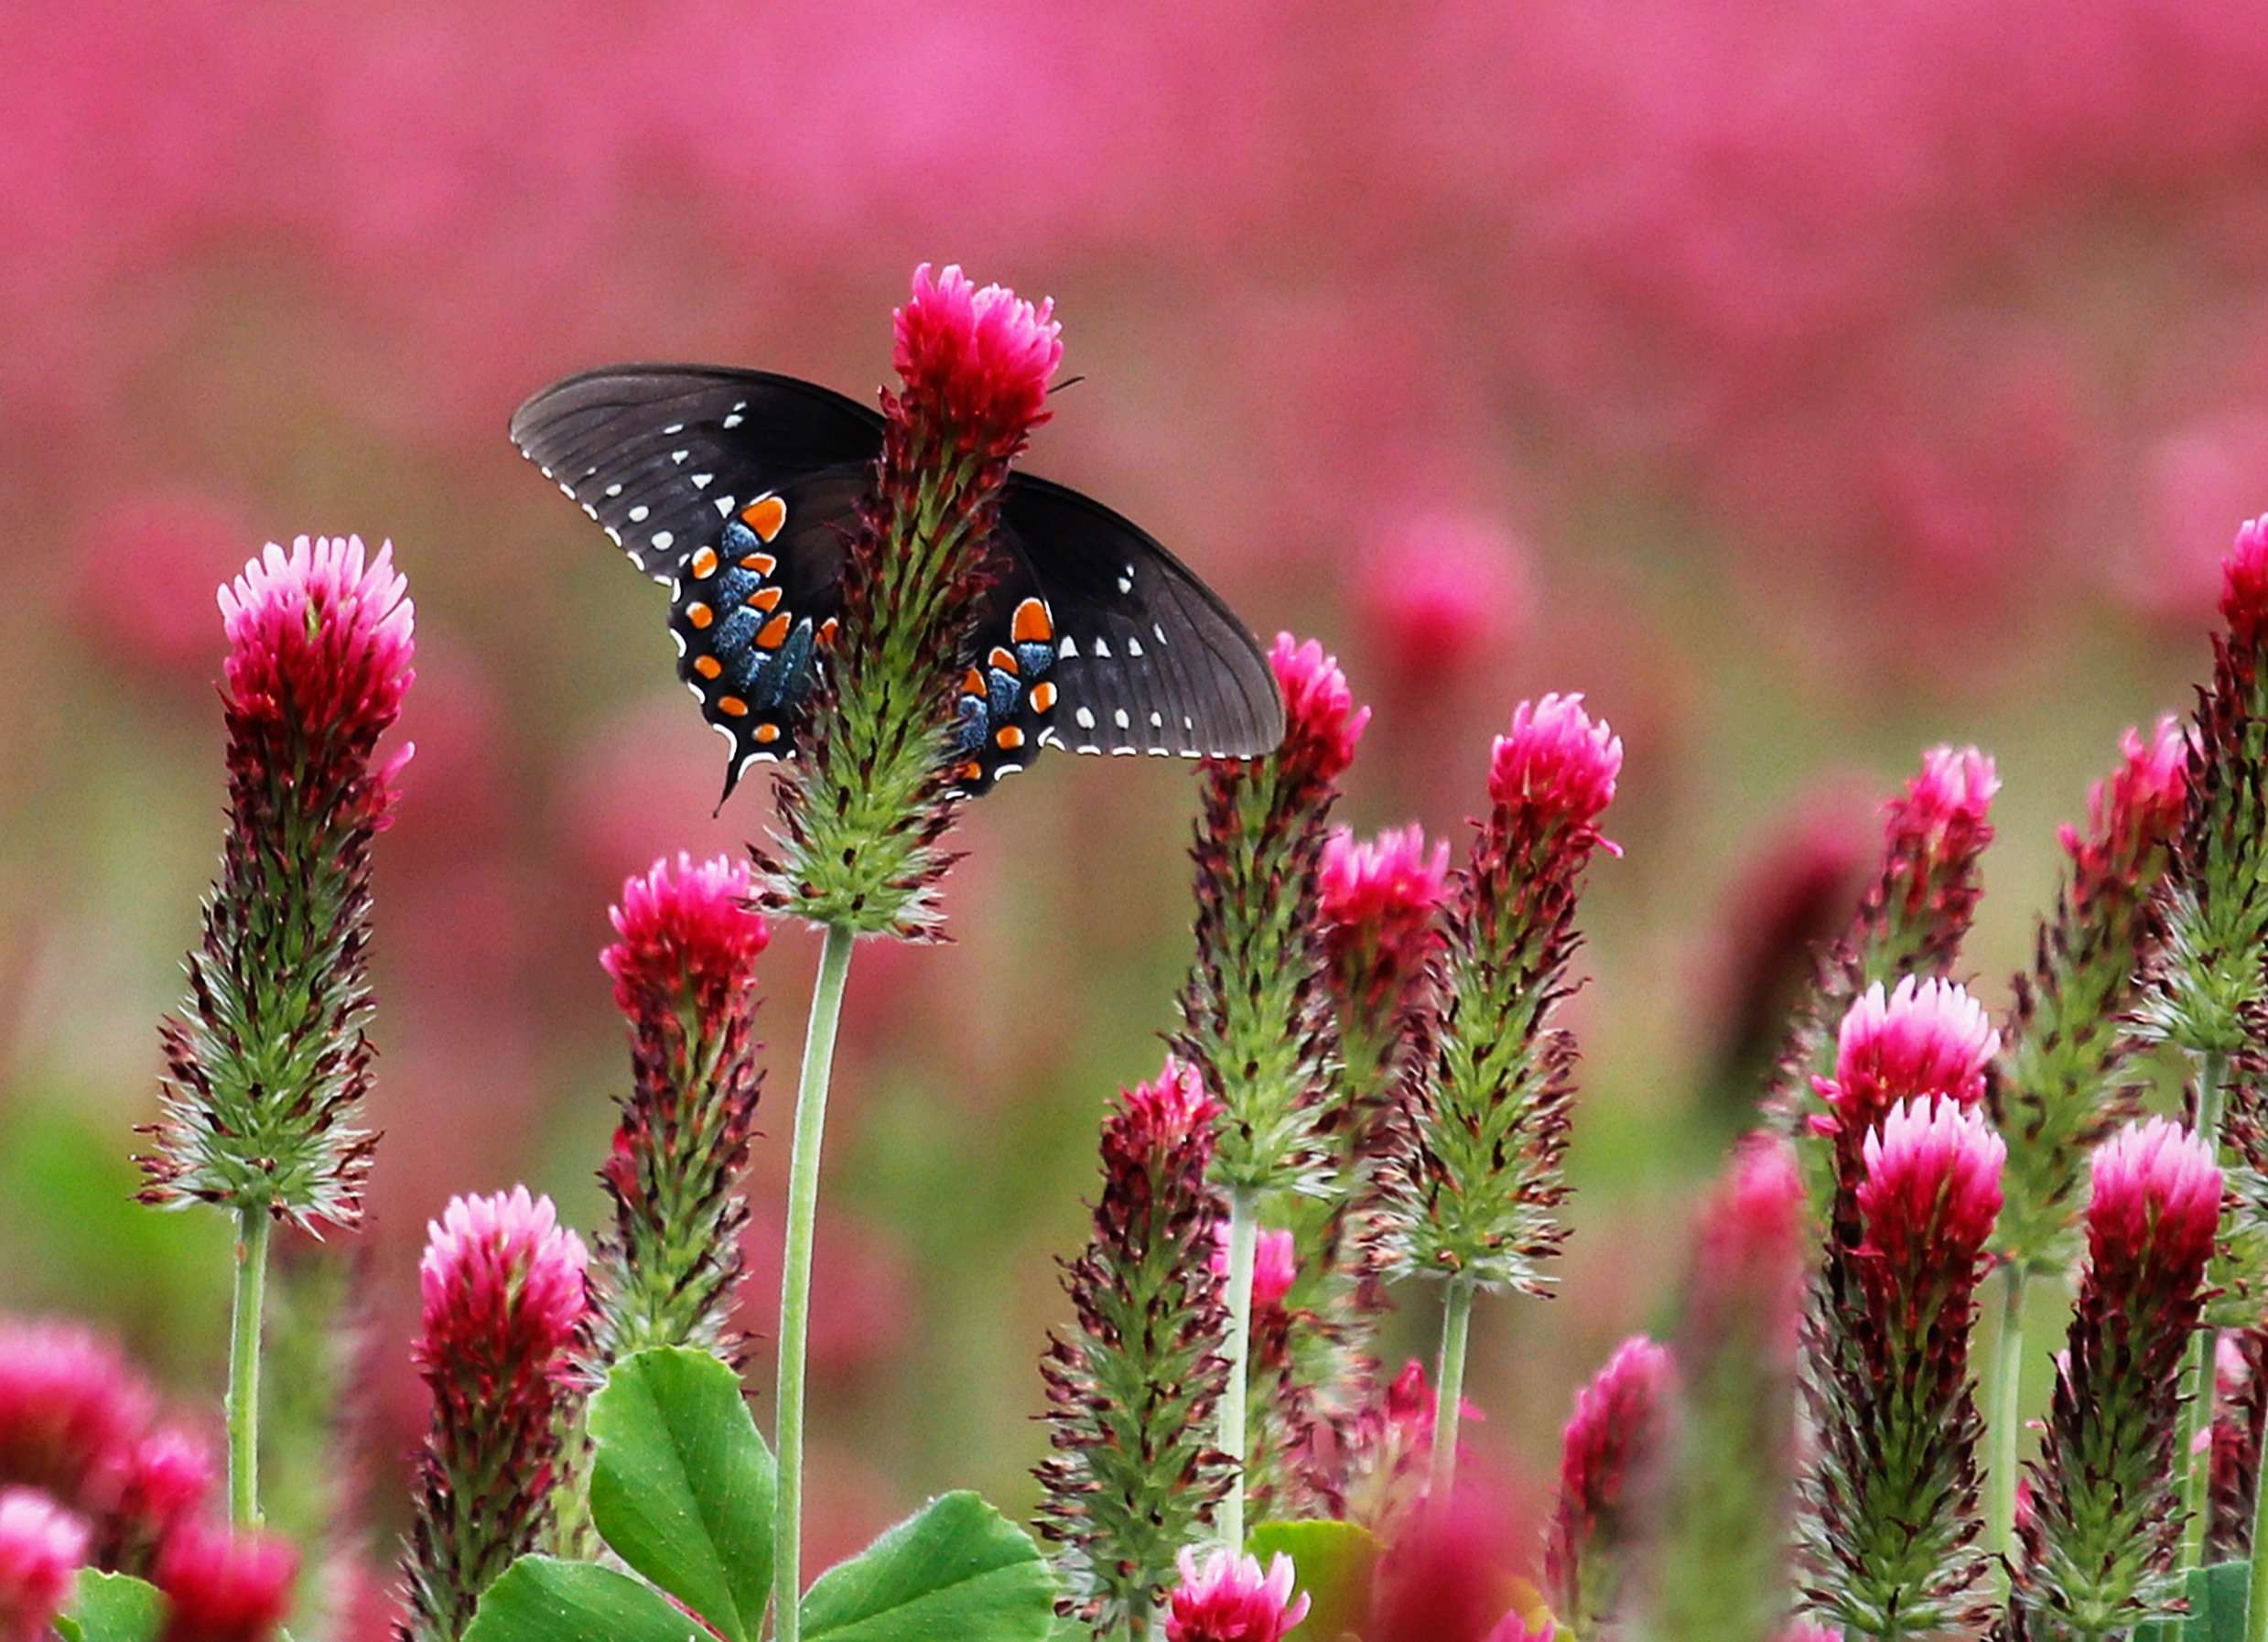 Spicebush Swallowtail in blooming crimson clover field photo by Gail E Rowley Ozark Stream Photography